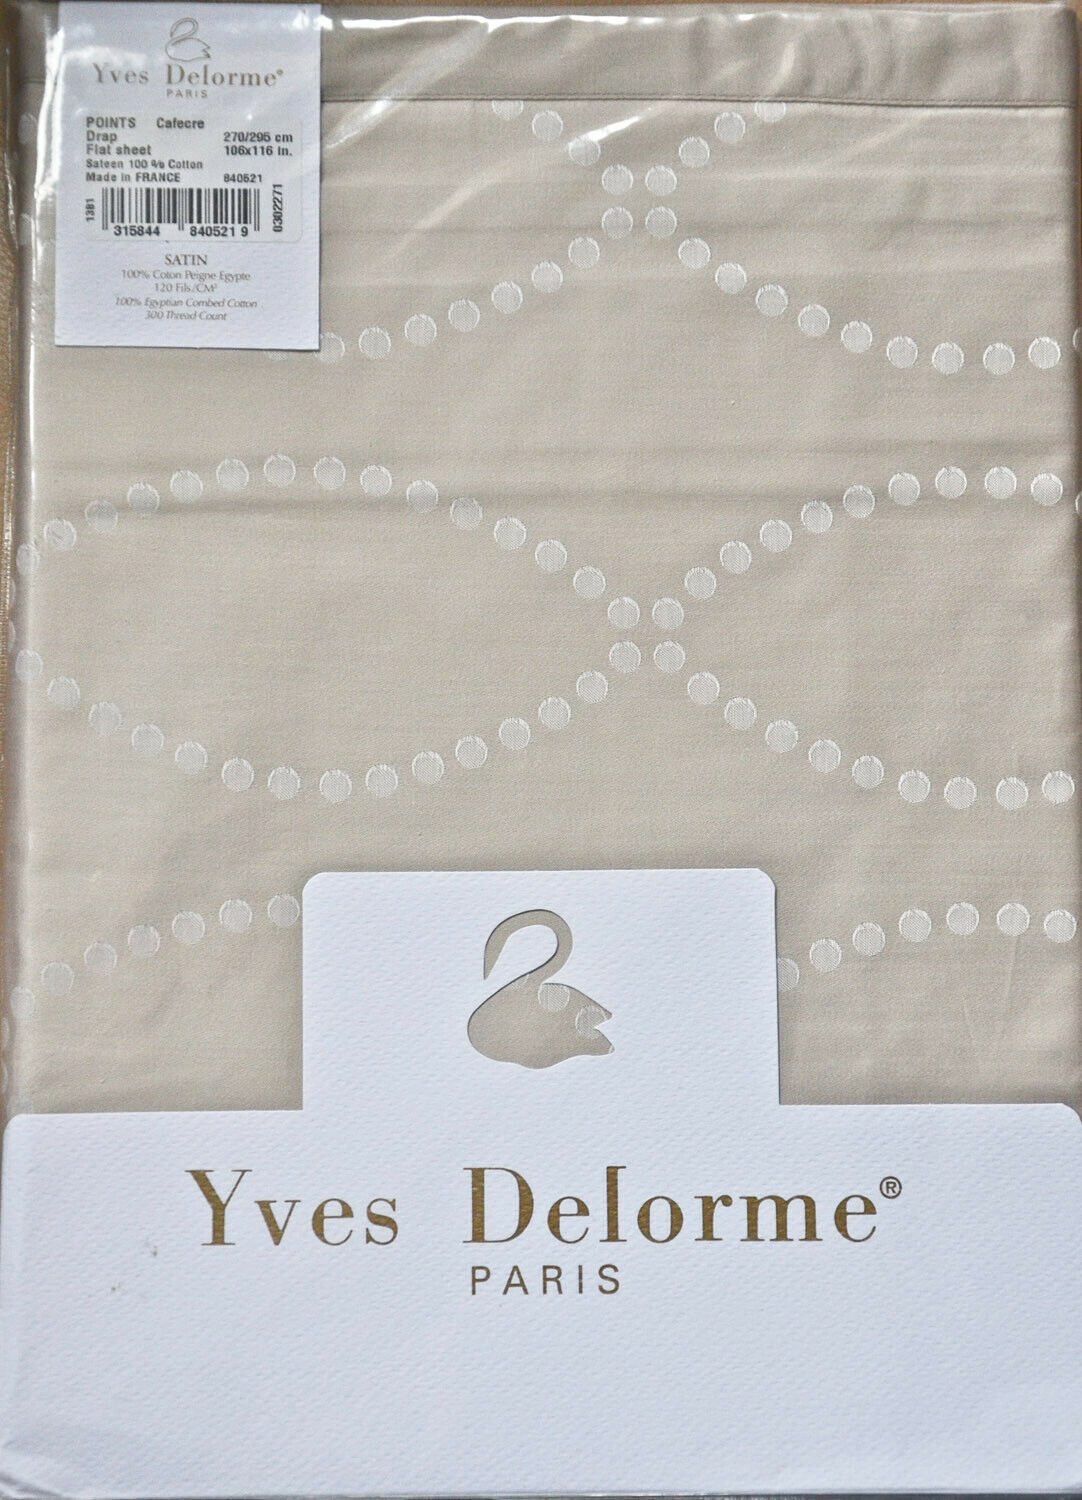 YVES DELORME  POINTS CafeCreme  FLAT SHEET  superking  king 270  295  NEW+PKT